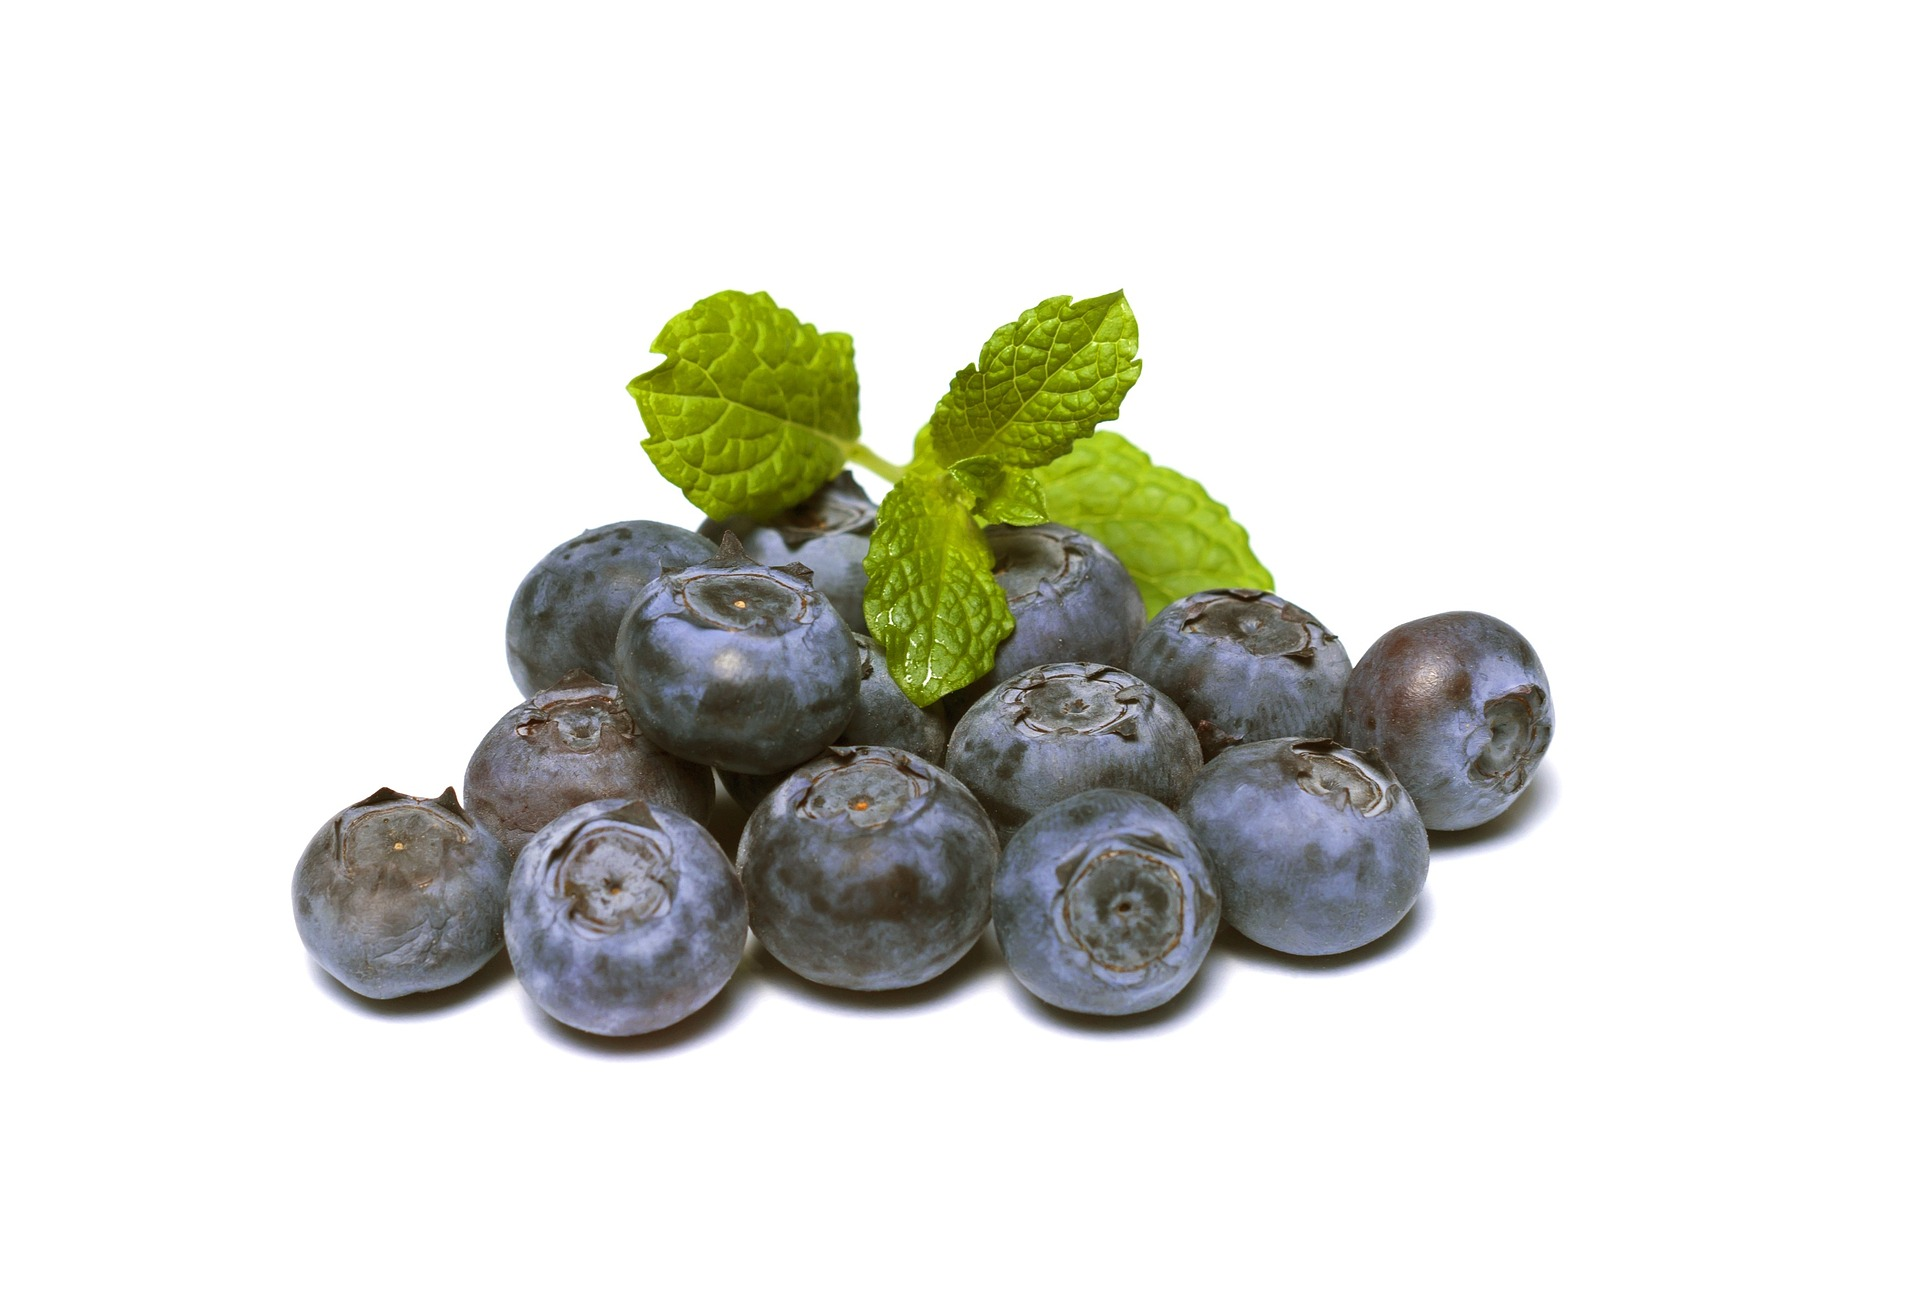 blueberries-894839_1920